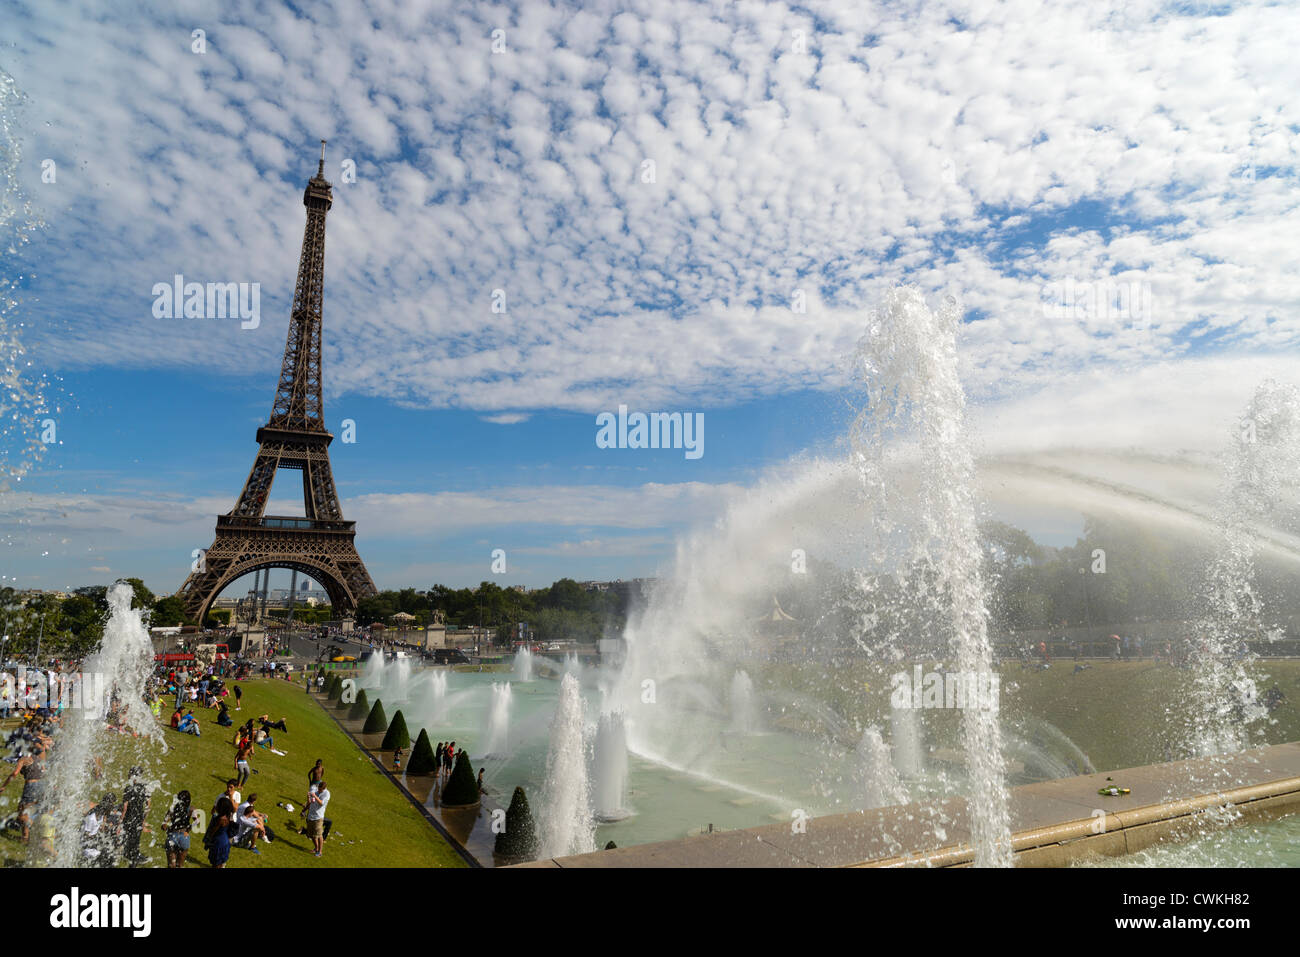 Trocadero with the Eiffel Tower, Paris, France - Stock Image